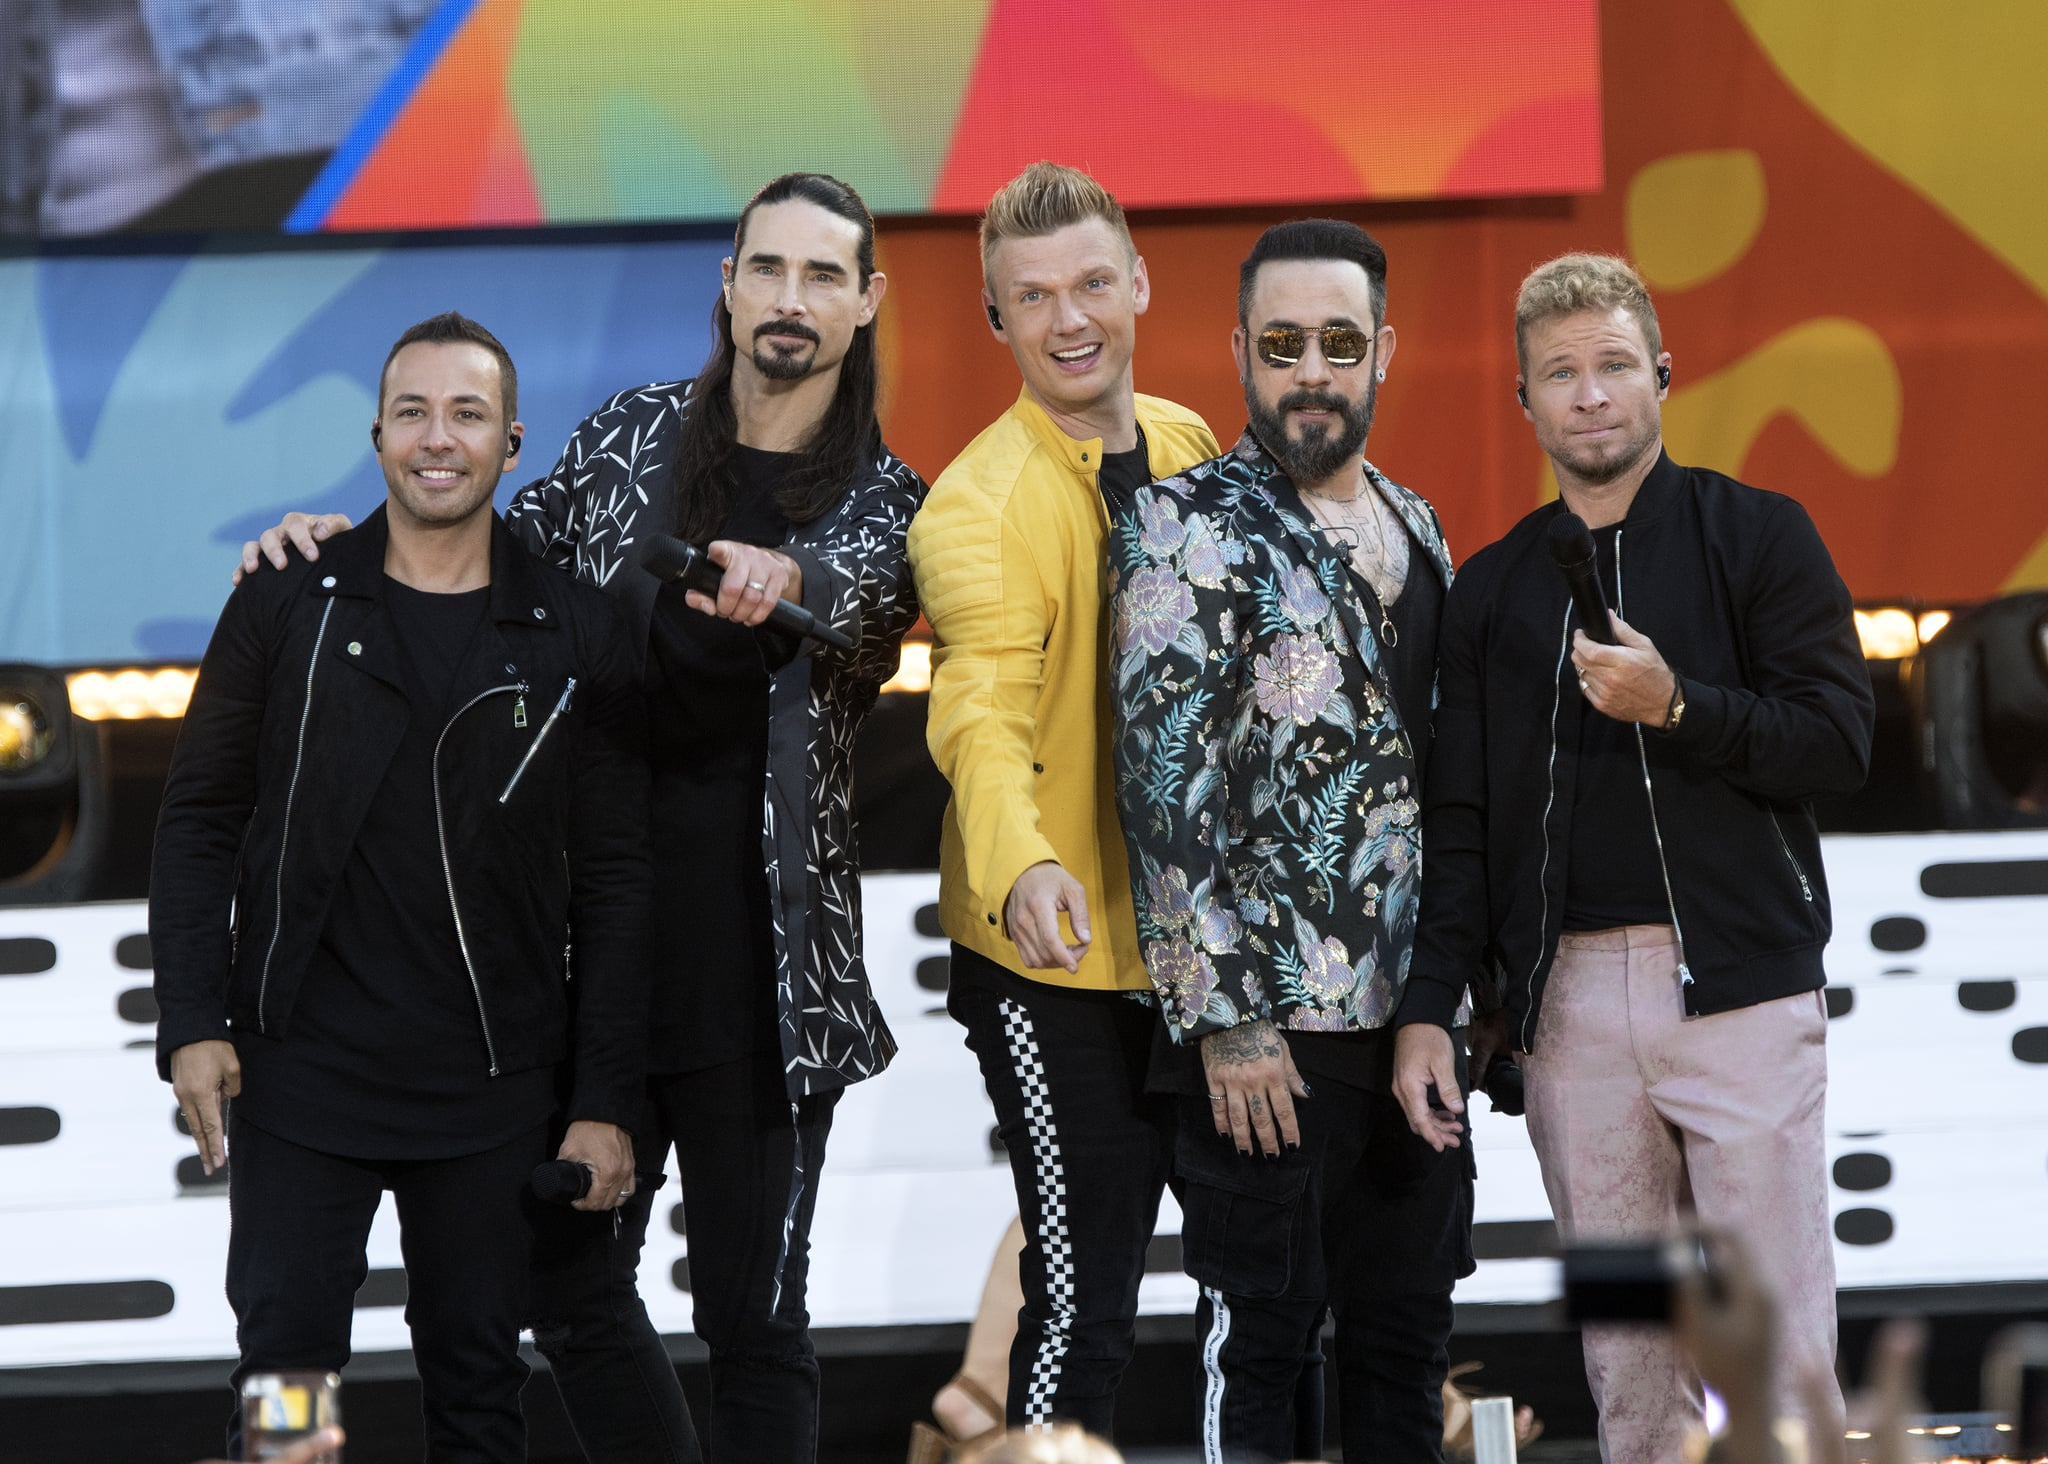 NEW YORK, NY - JULY 13:  (L-R) Howie D, Kevin Richardson, Nick Carter, AJ McLean and Brian Littrell of the Backstreet Boys perform live on ABC's